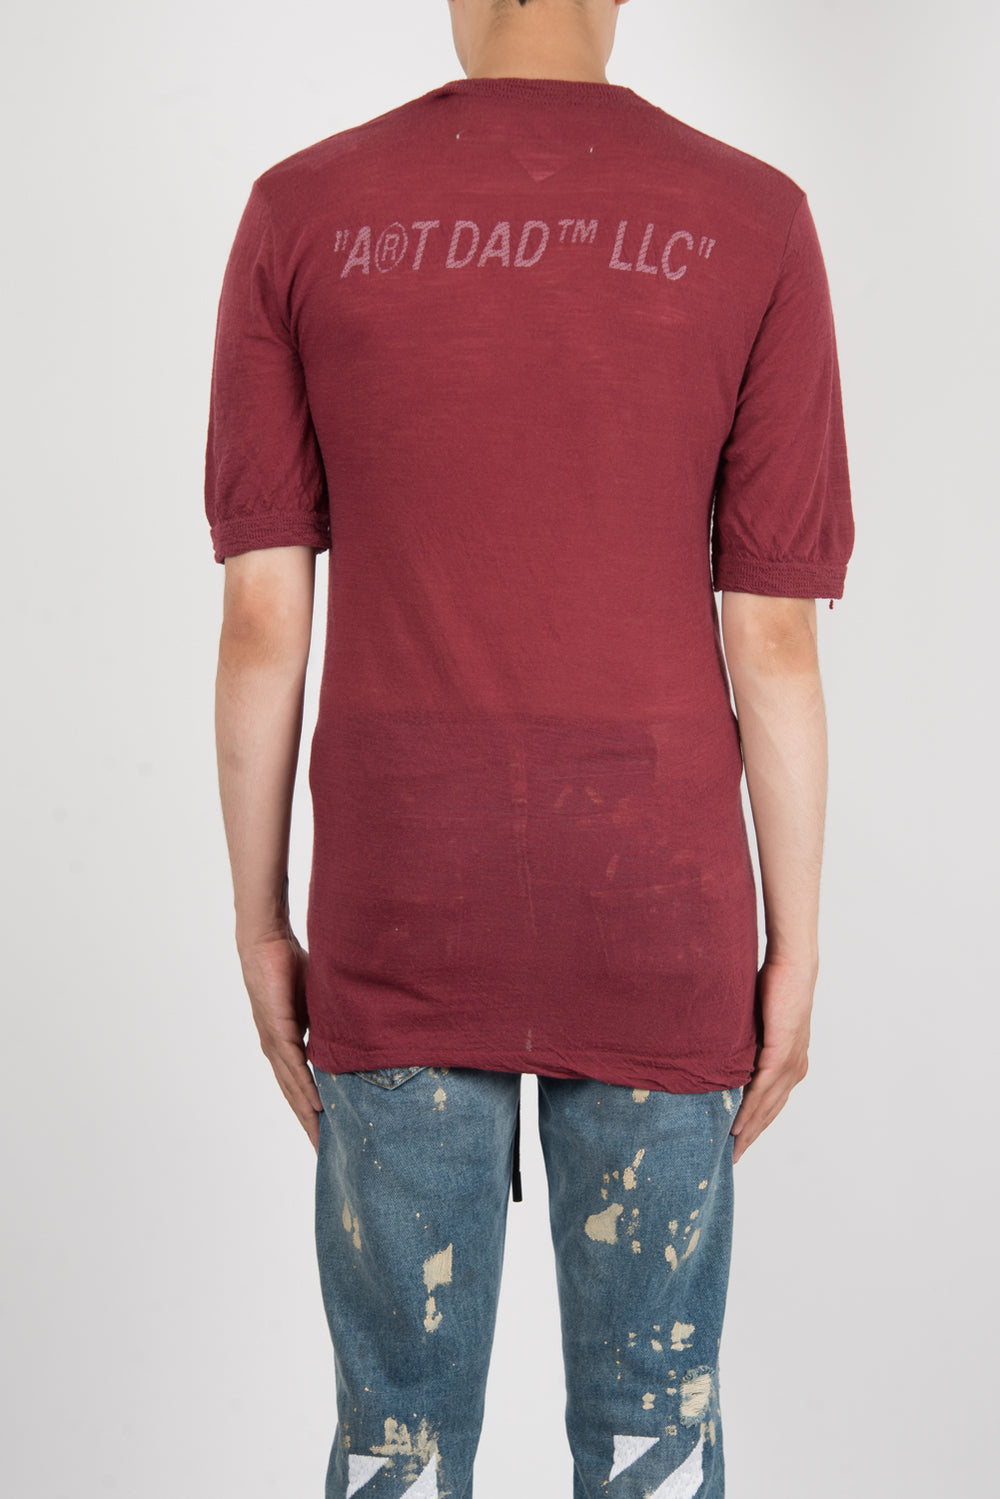 OFF-WHITE Nights Knitted T-Shirt In Bordeaux